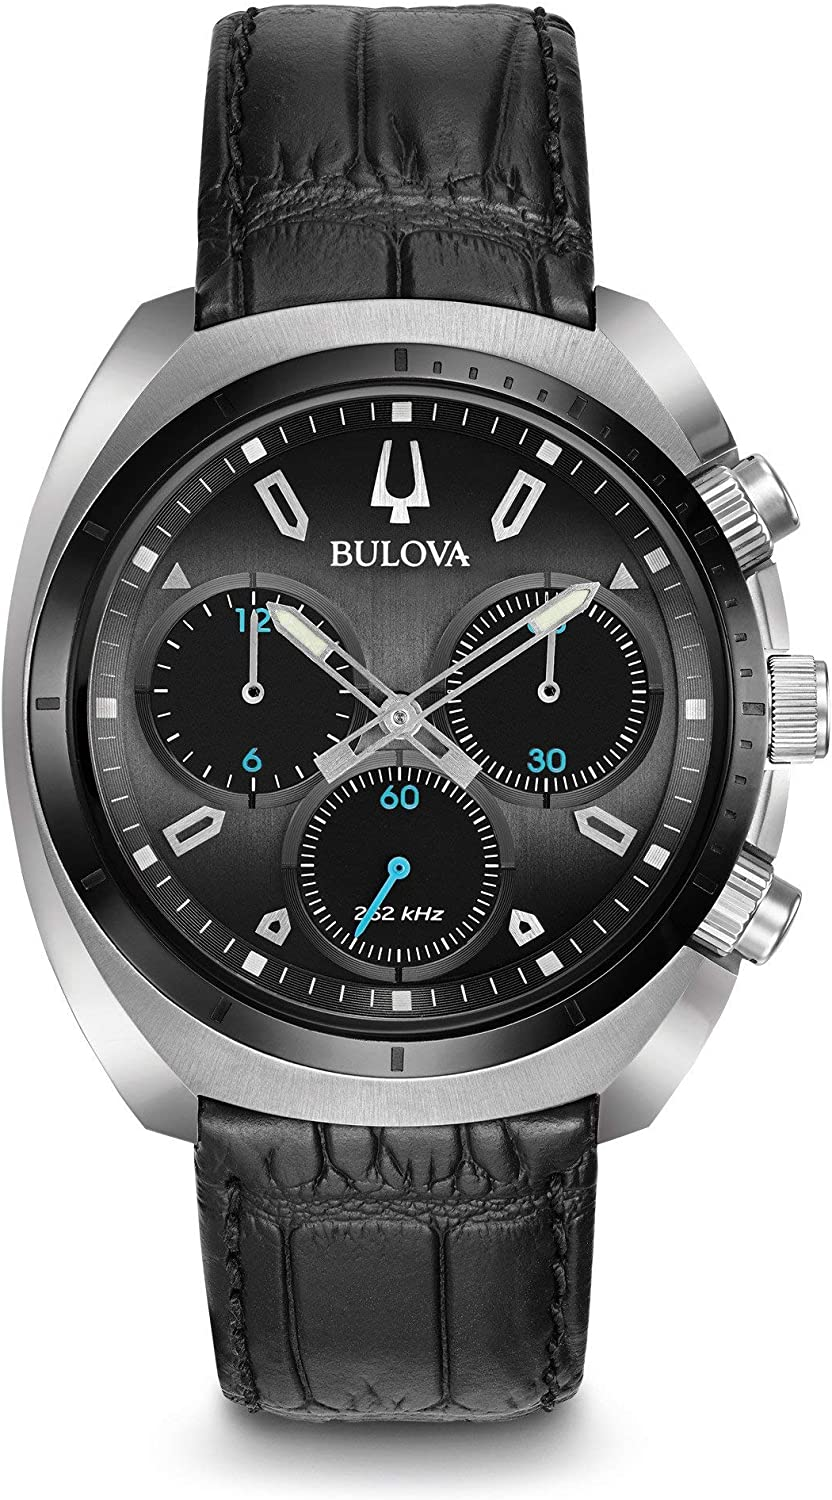 Bulova Men's Curv Collection Stainless Steel Analog-Quartz Watch with Leather-Alligator Strap, Black, 22 (Model: 98A155)